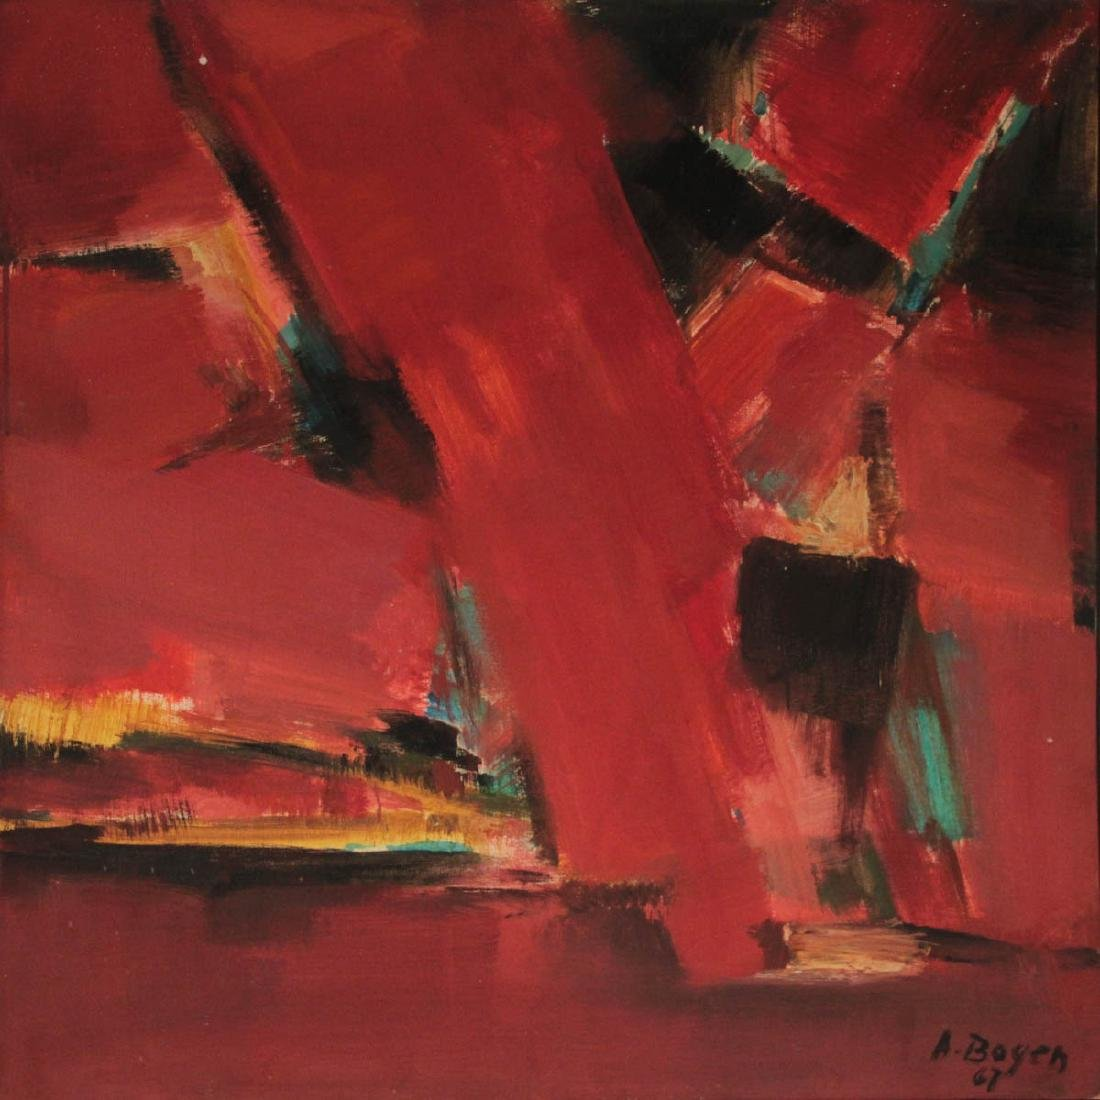 Alexander Bogen (1916-2010) - Abstract, Oil and Canvas,